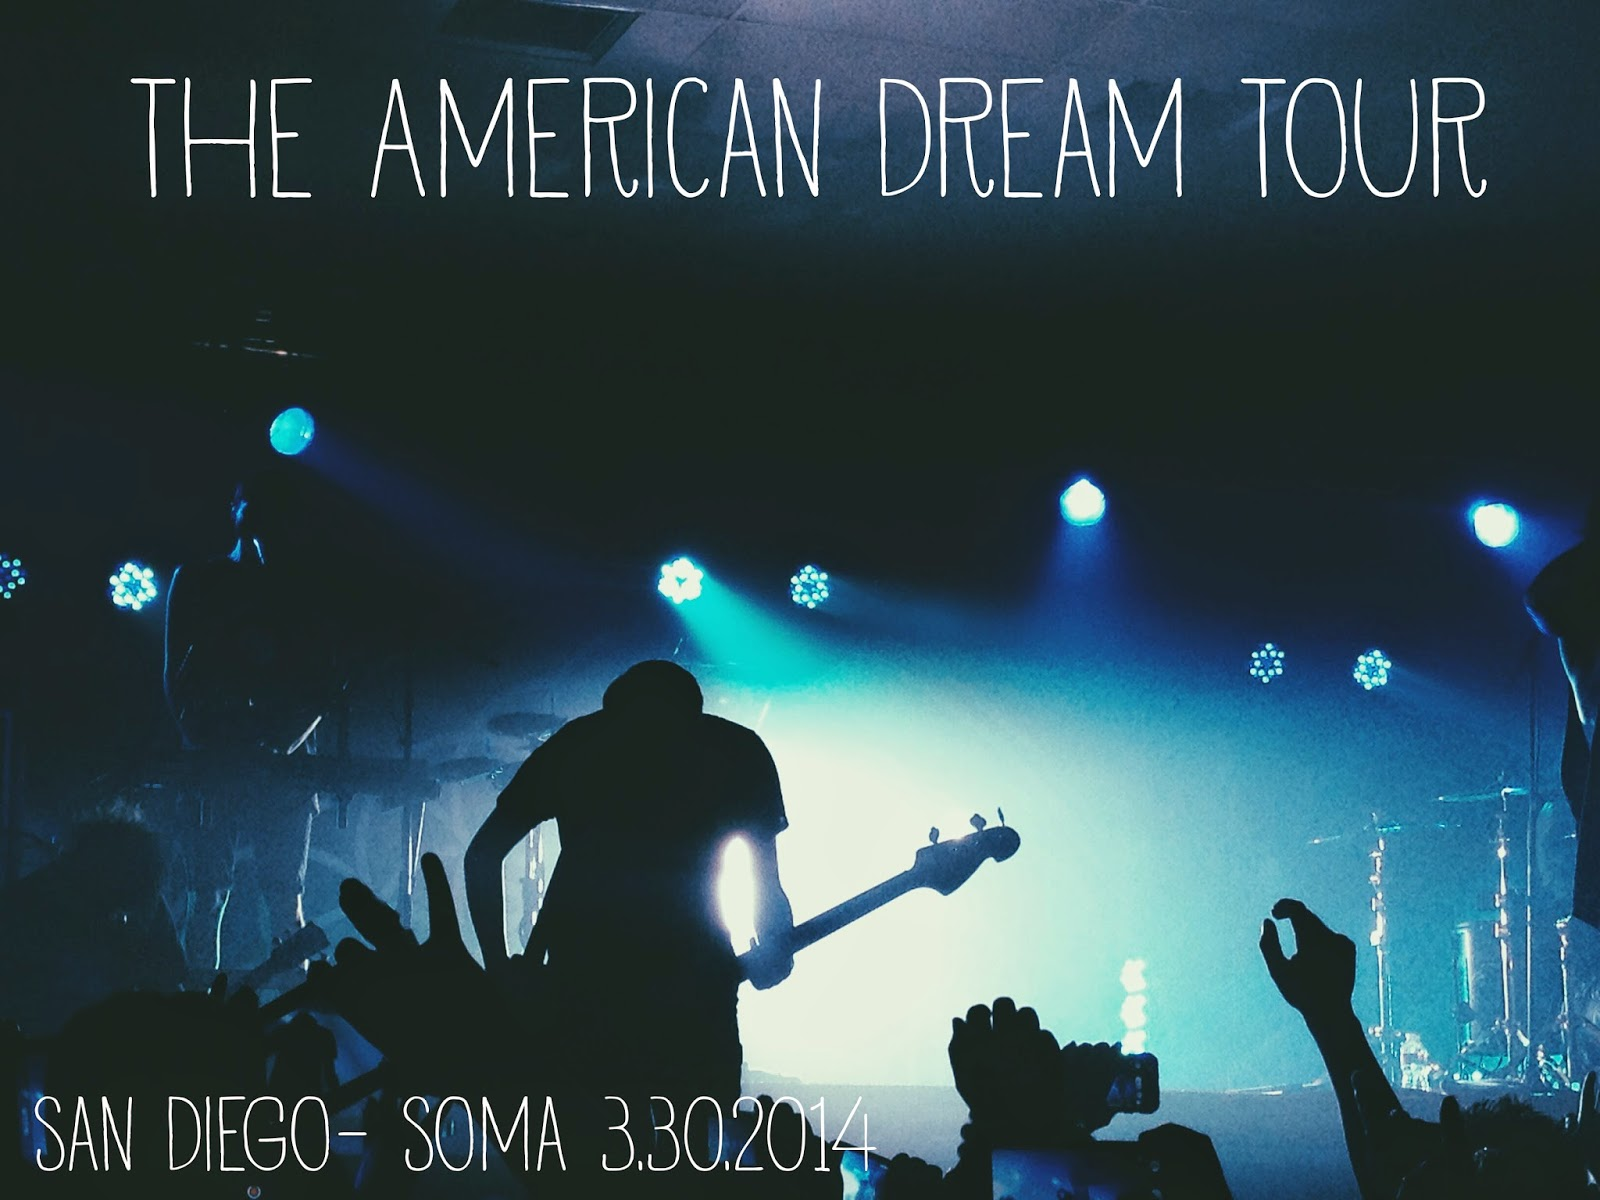 Courtney Tomesch The American Dream Tour San Diego SOMA Bring Me the Horizon